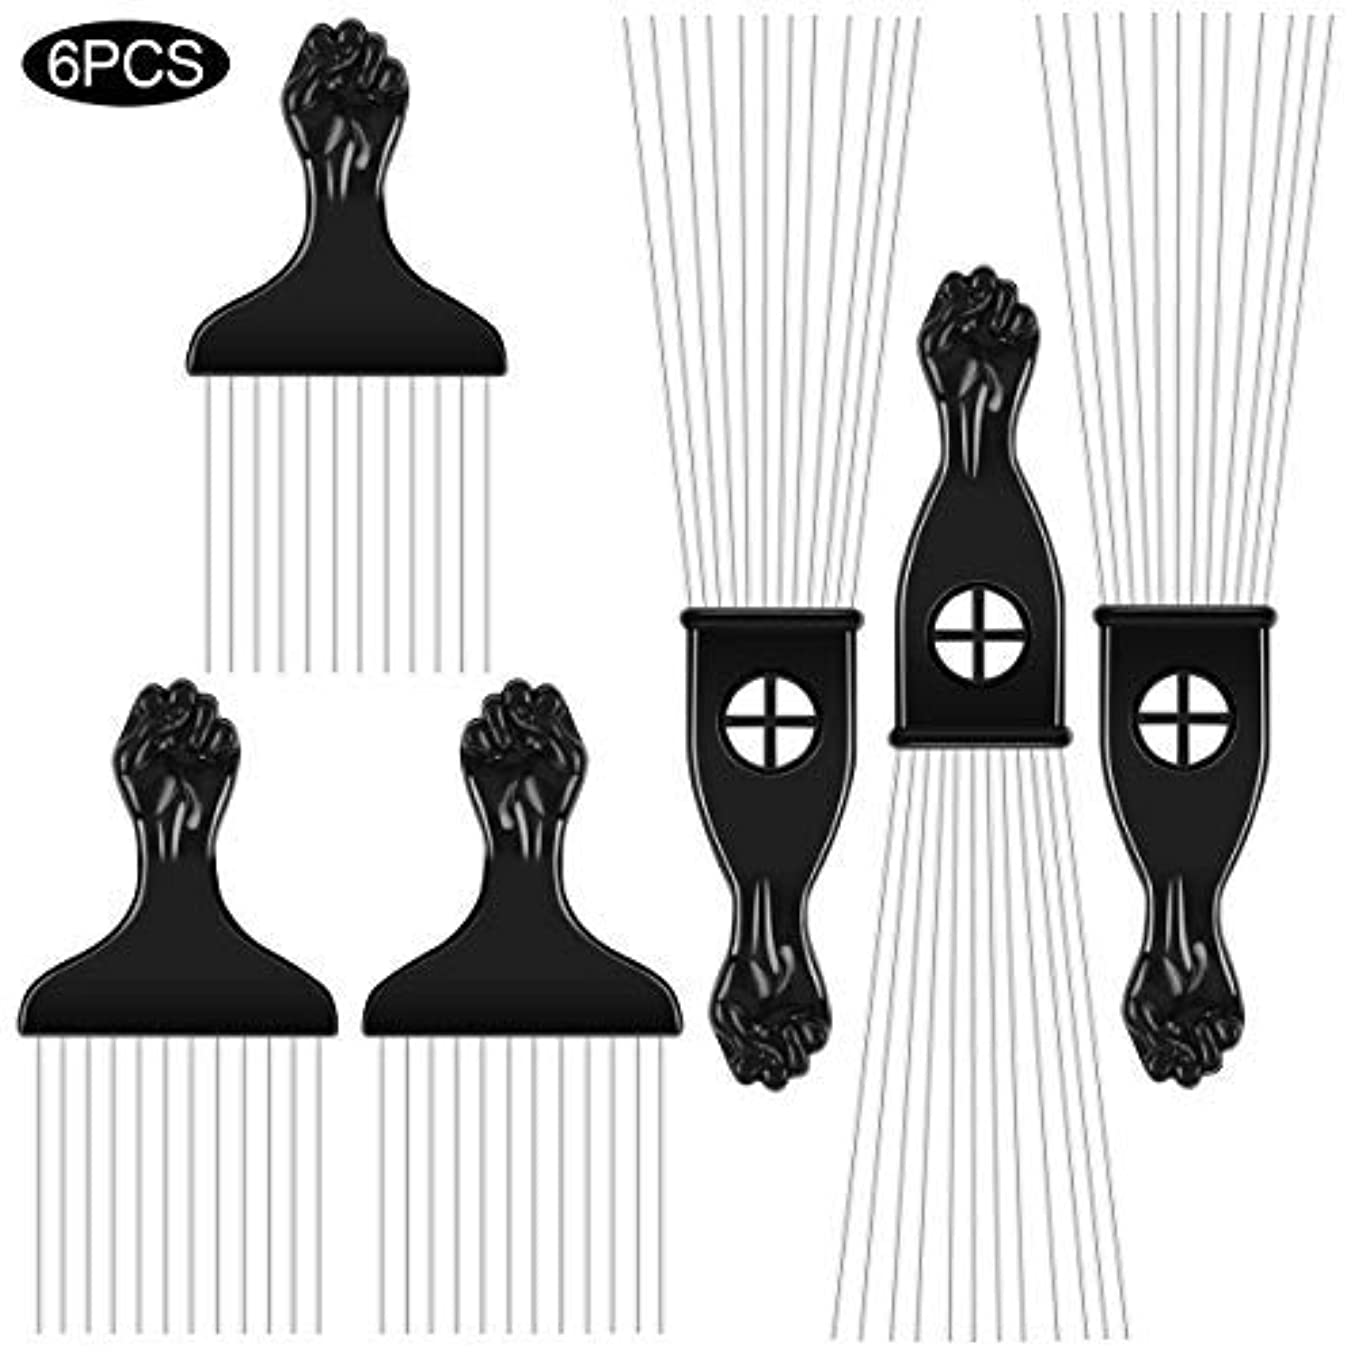 再編成する警告リハーサル6PCS Afro Combs Metal African American black Fist Pick Comb Hairdressing Styling Tool [並行輸入品]